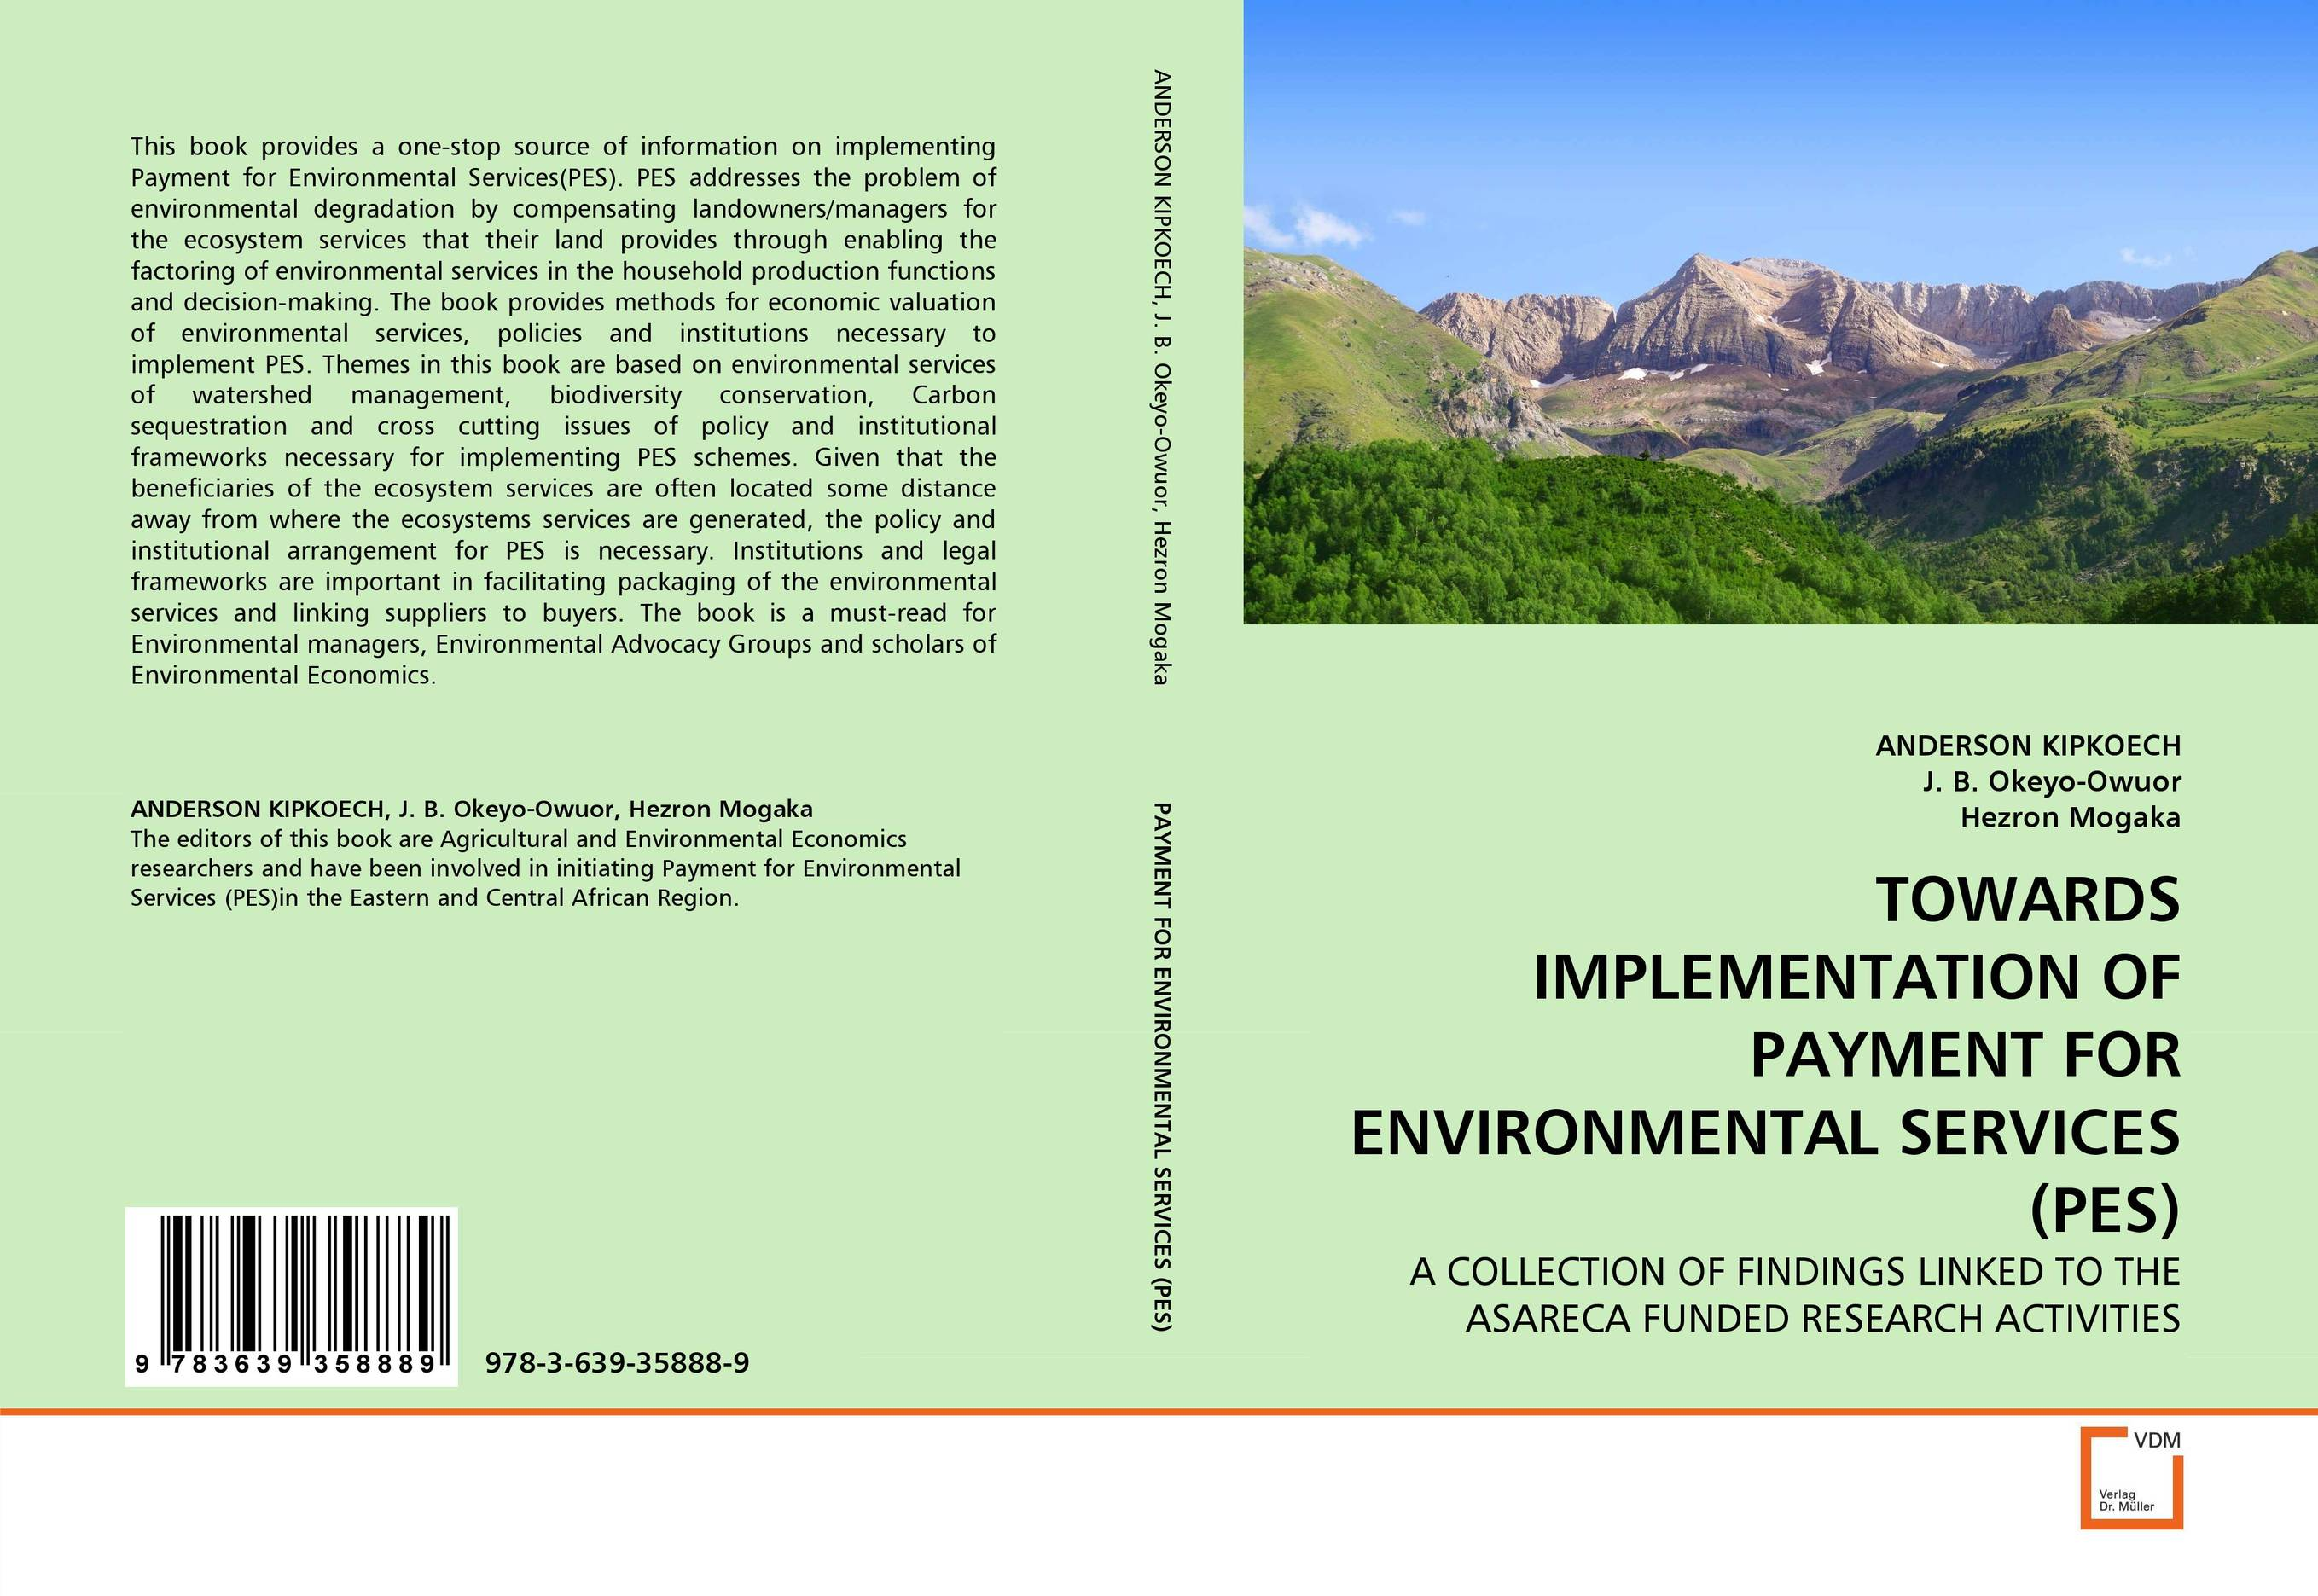 TOWARDS IMPLEMENTATION OF PAYMENT FOR ENVIRONMENTAL SERVICES (PES) a decision support tool for library book inventory management